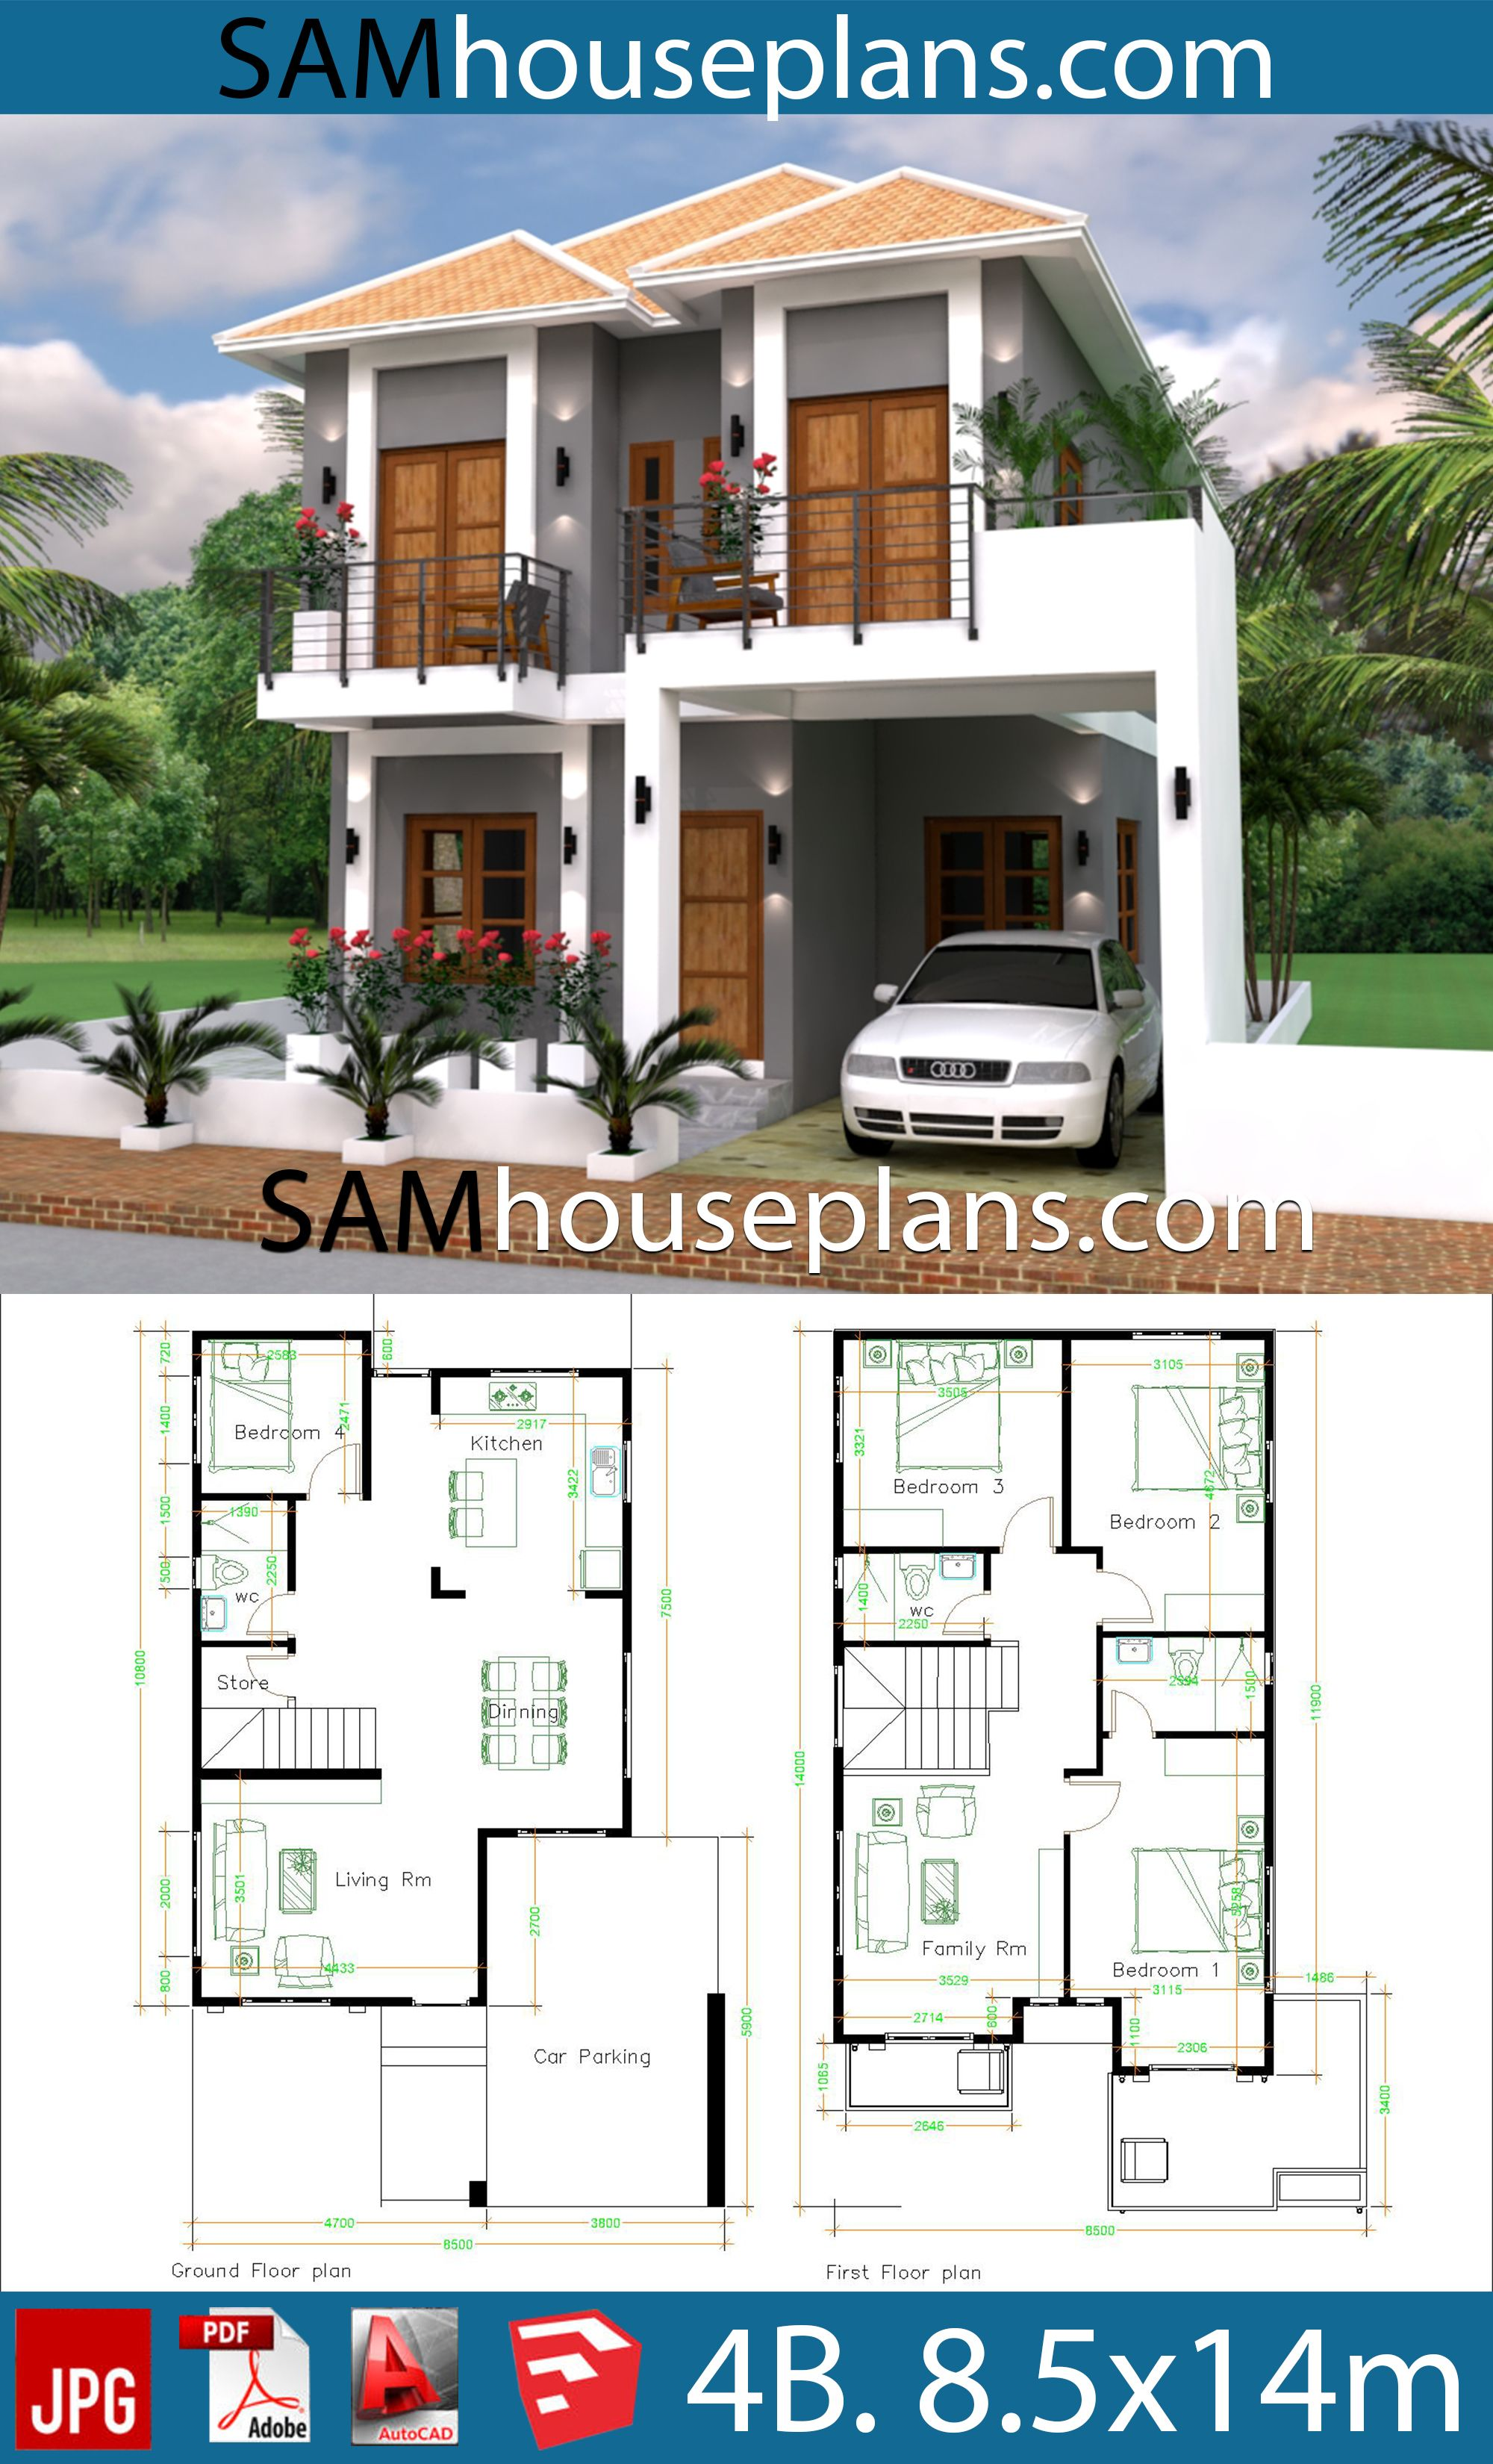 House Plans 8 5x14 With 4 Bedrooms Sam House Plans Two Storey House Plans House Layout Plans Bungalow Floor Plans